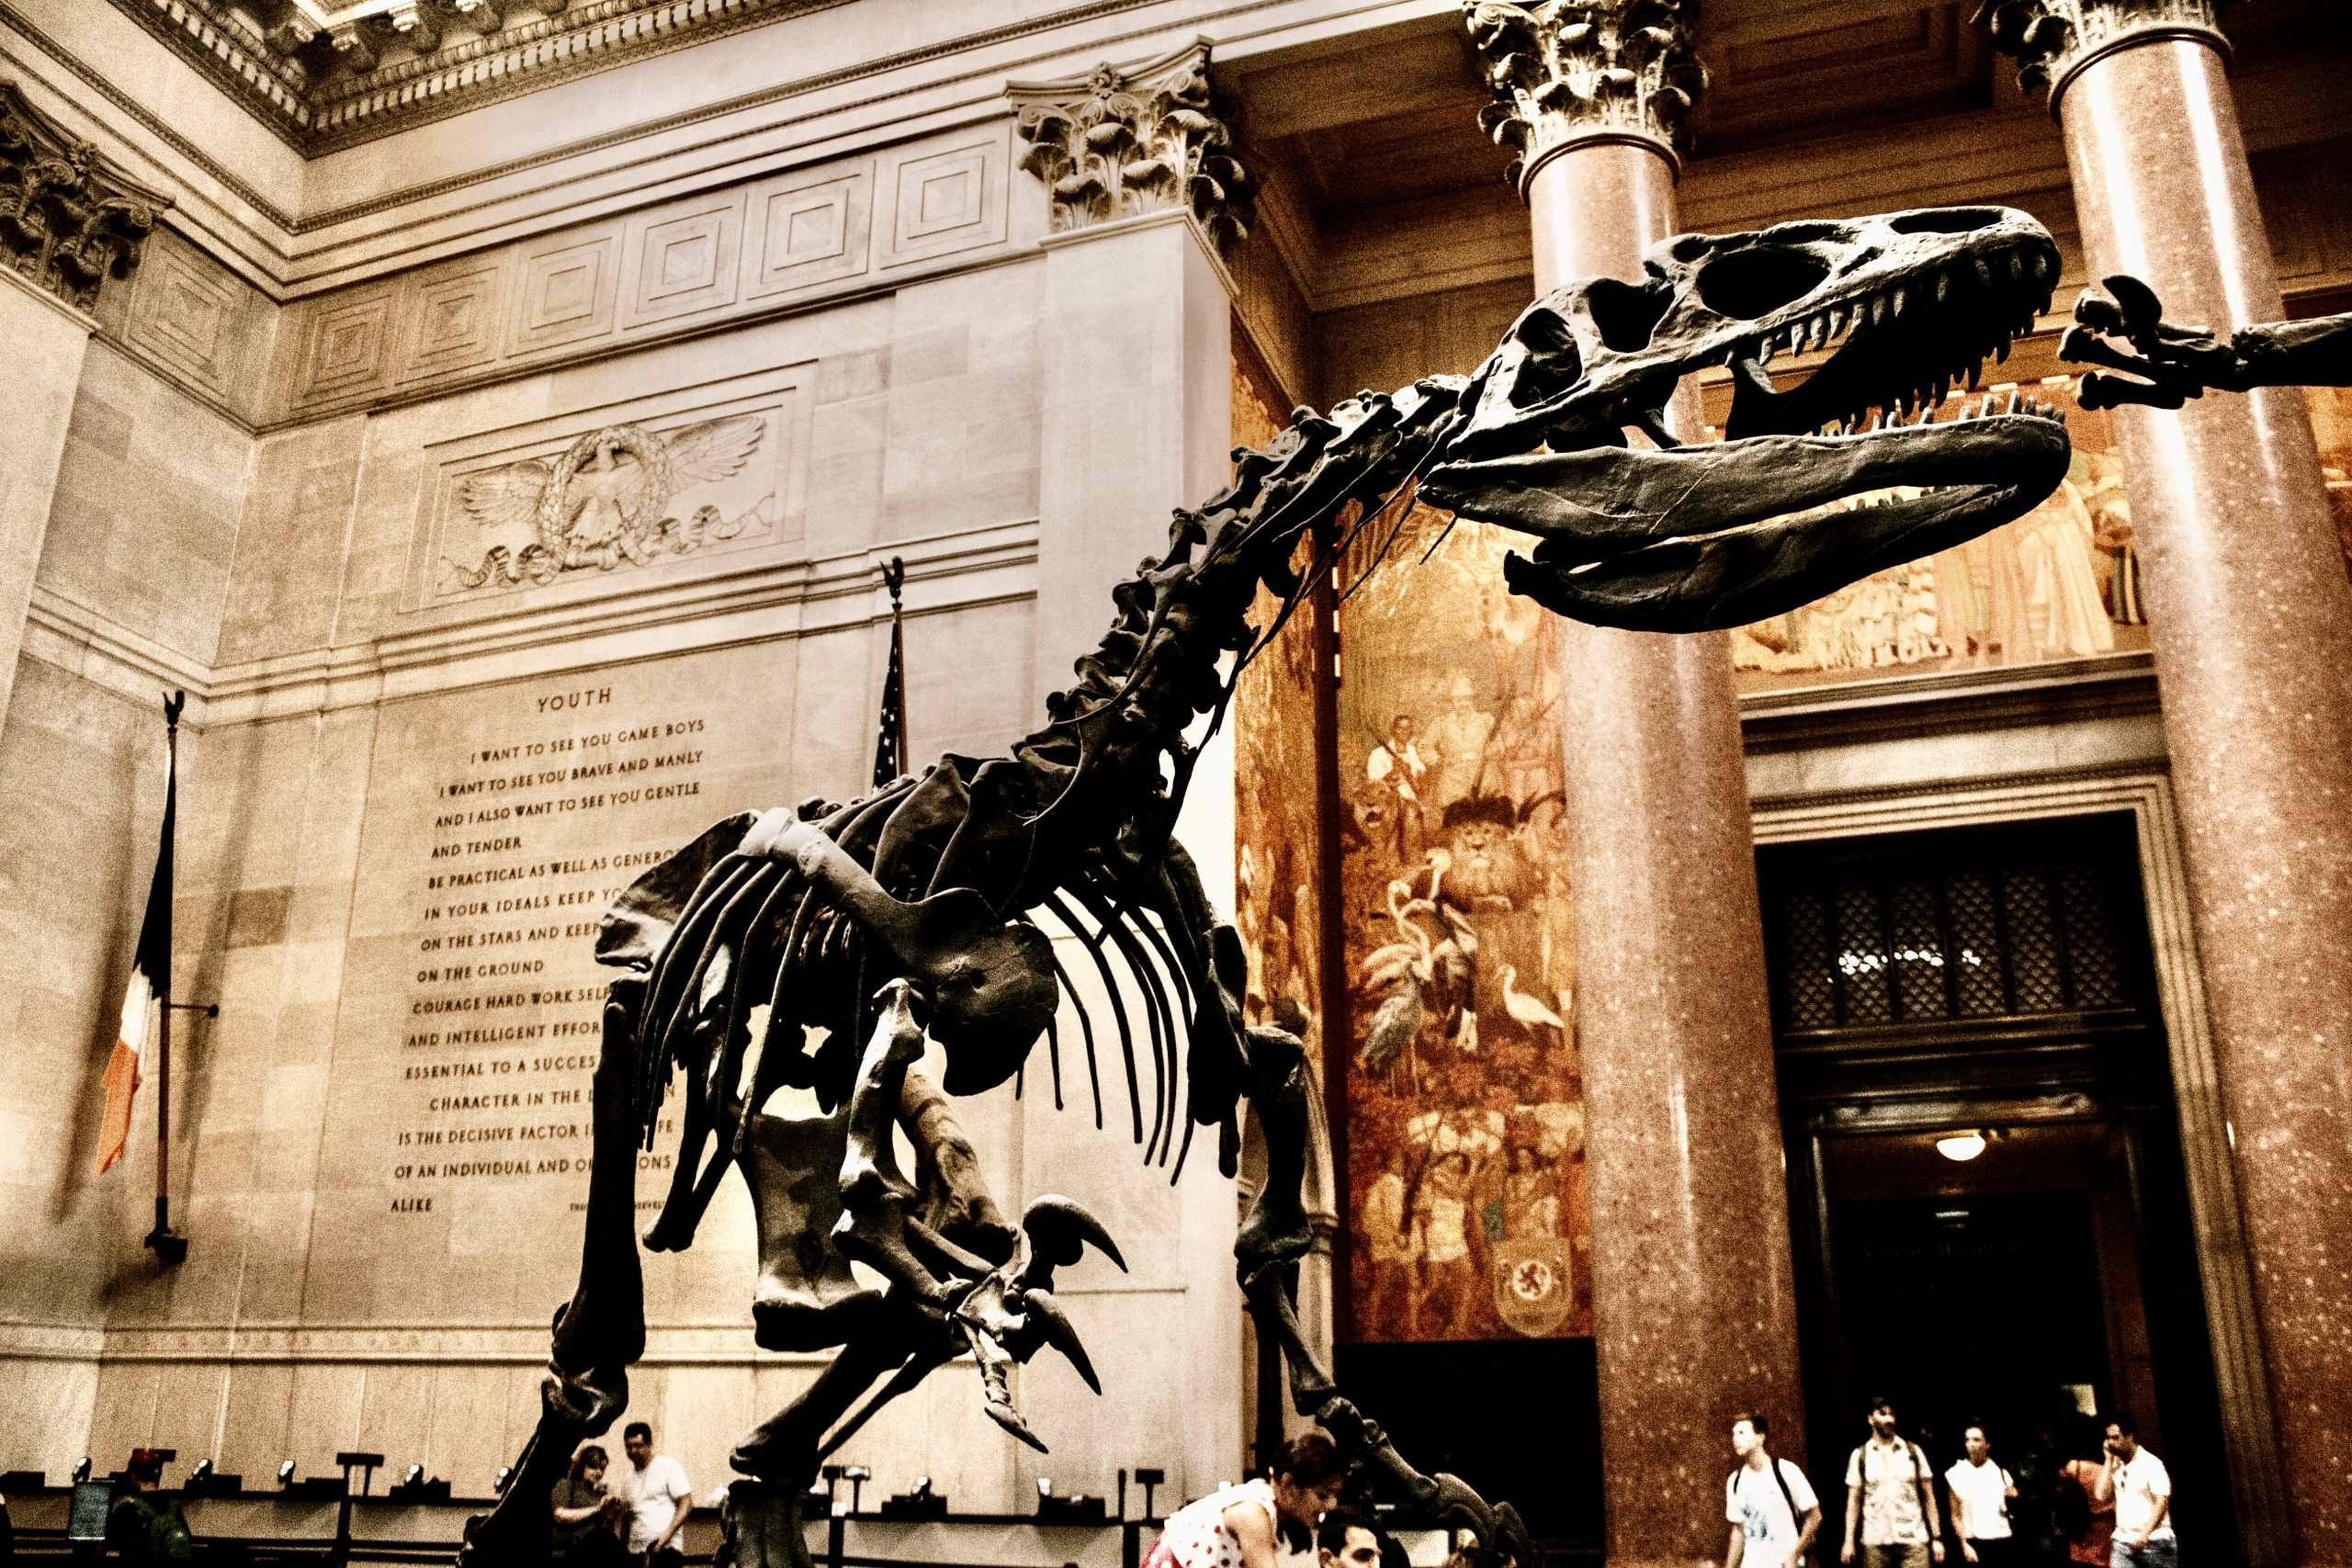 American Museum of Natural History is a great place to take the kids when visiting NYC!